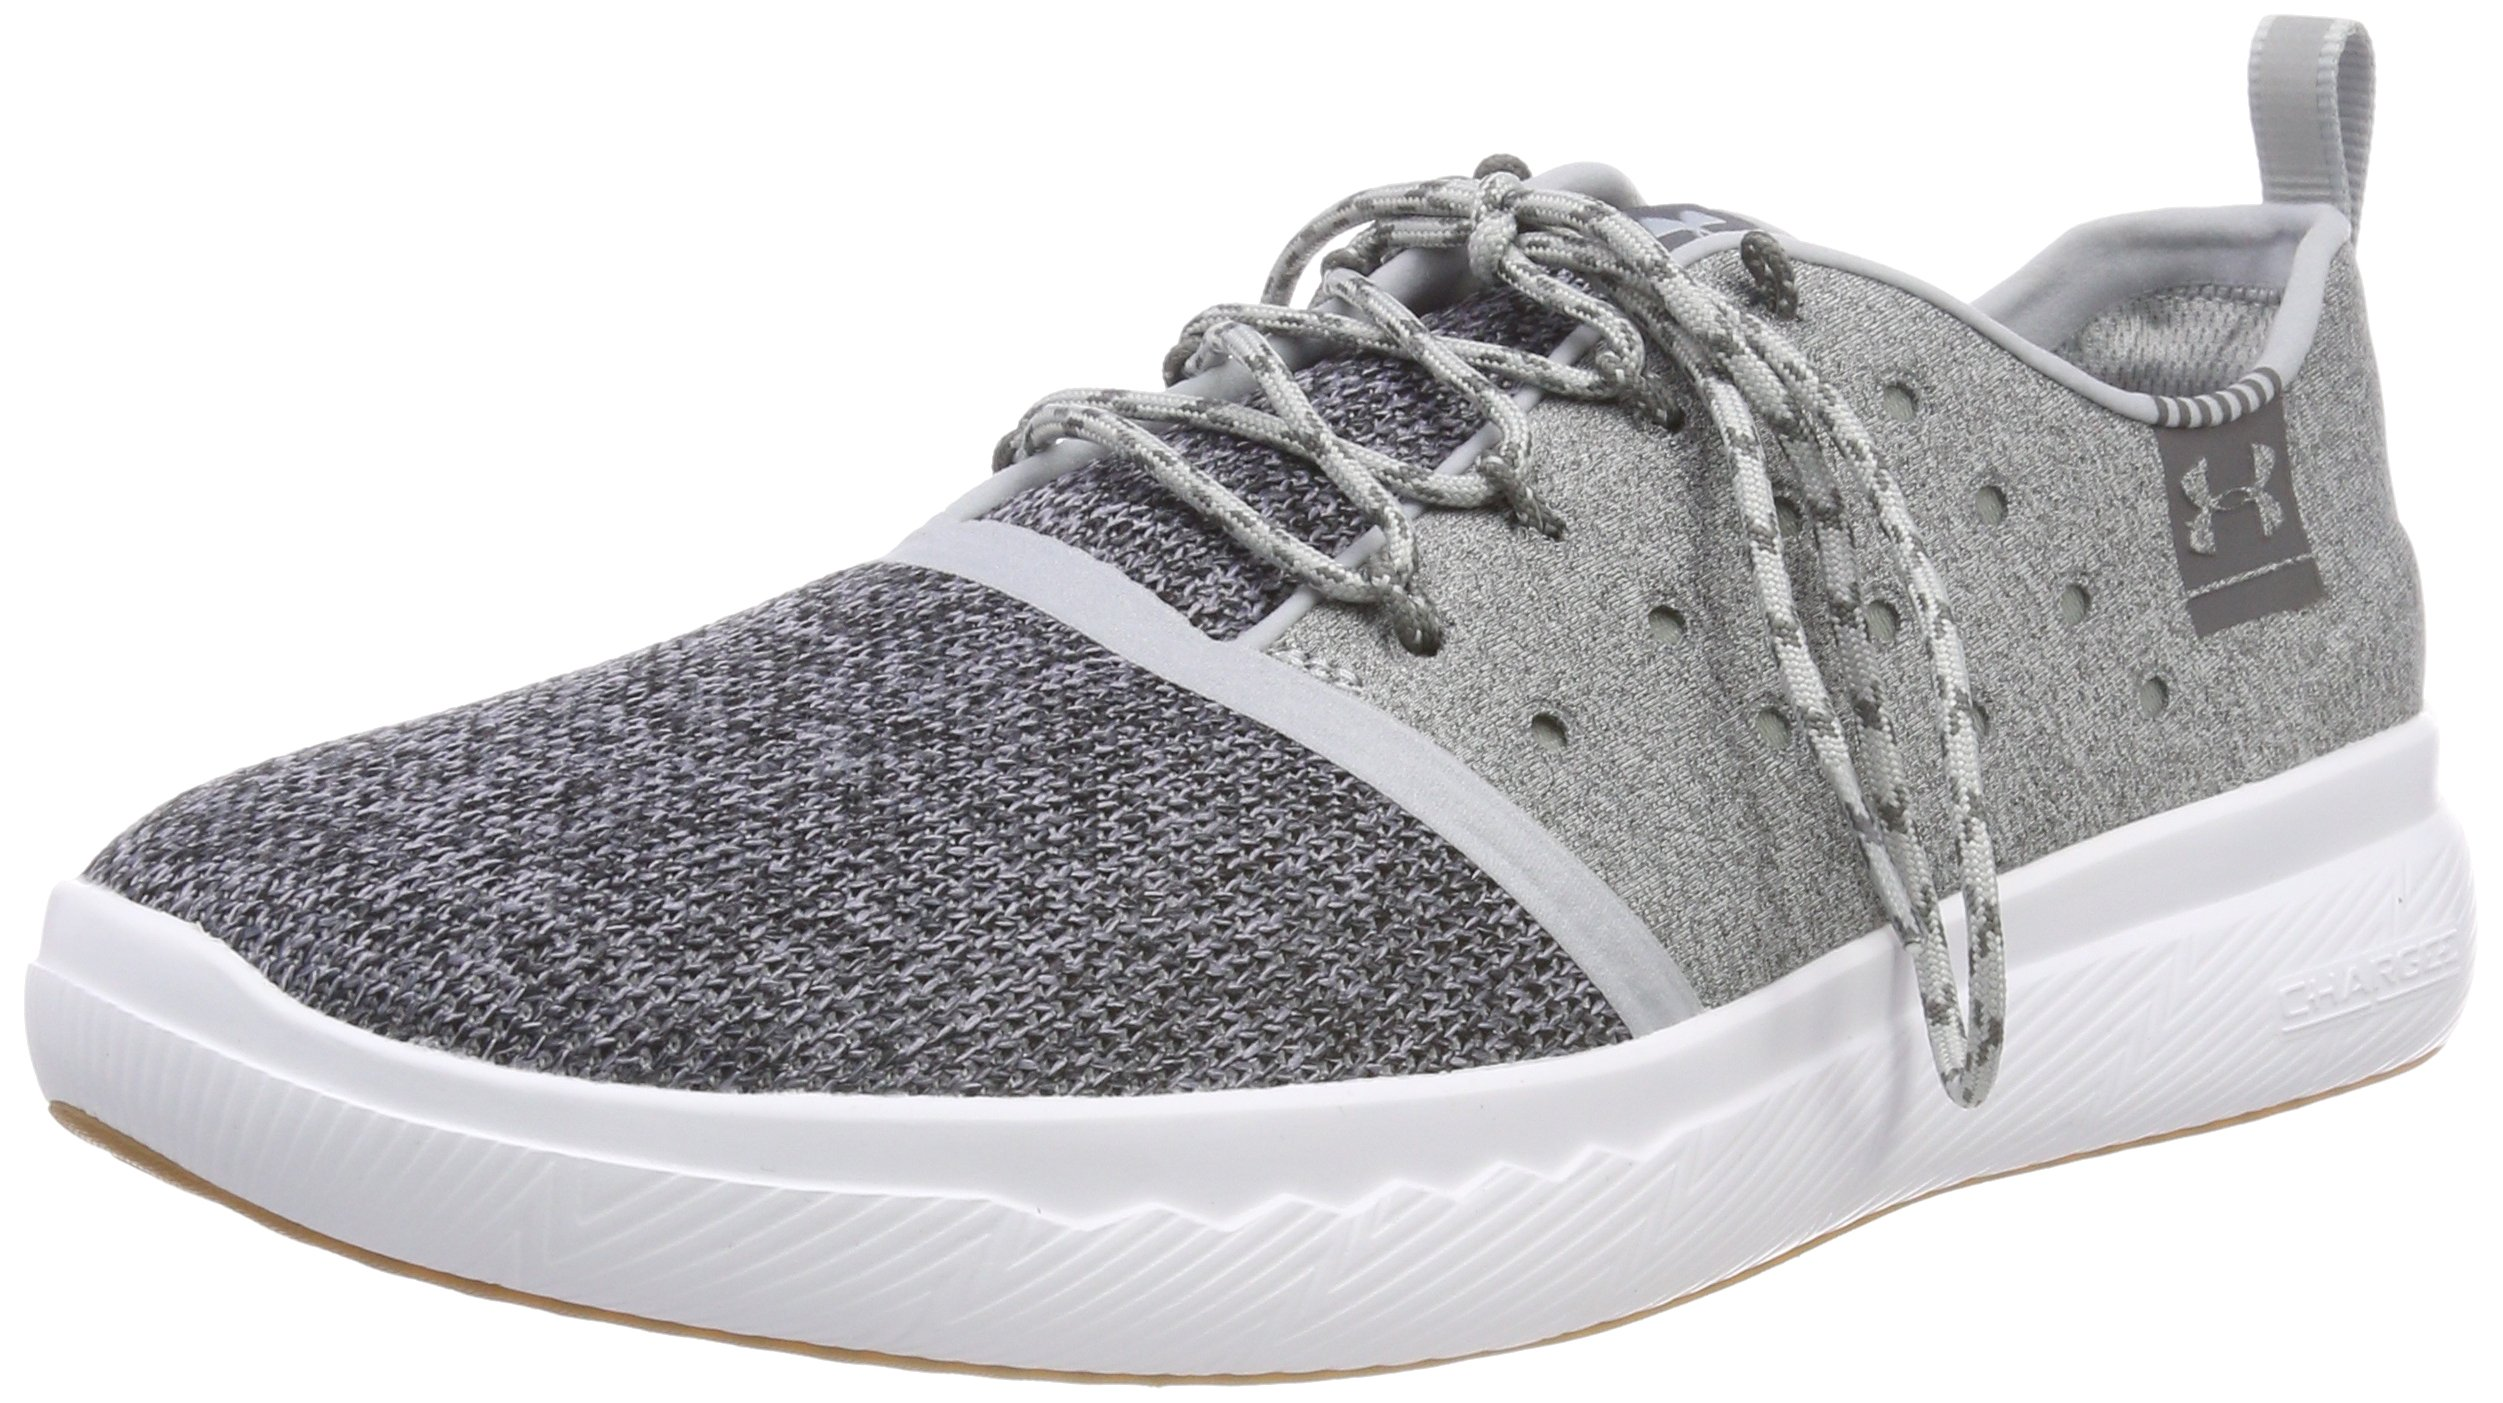 Under Armour Men's Charged 24/7 Low, Overcast Grey, 11.5 D